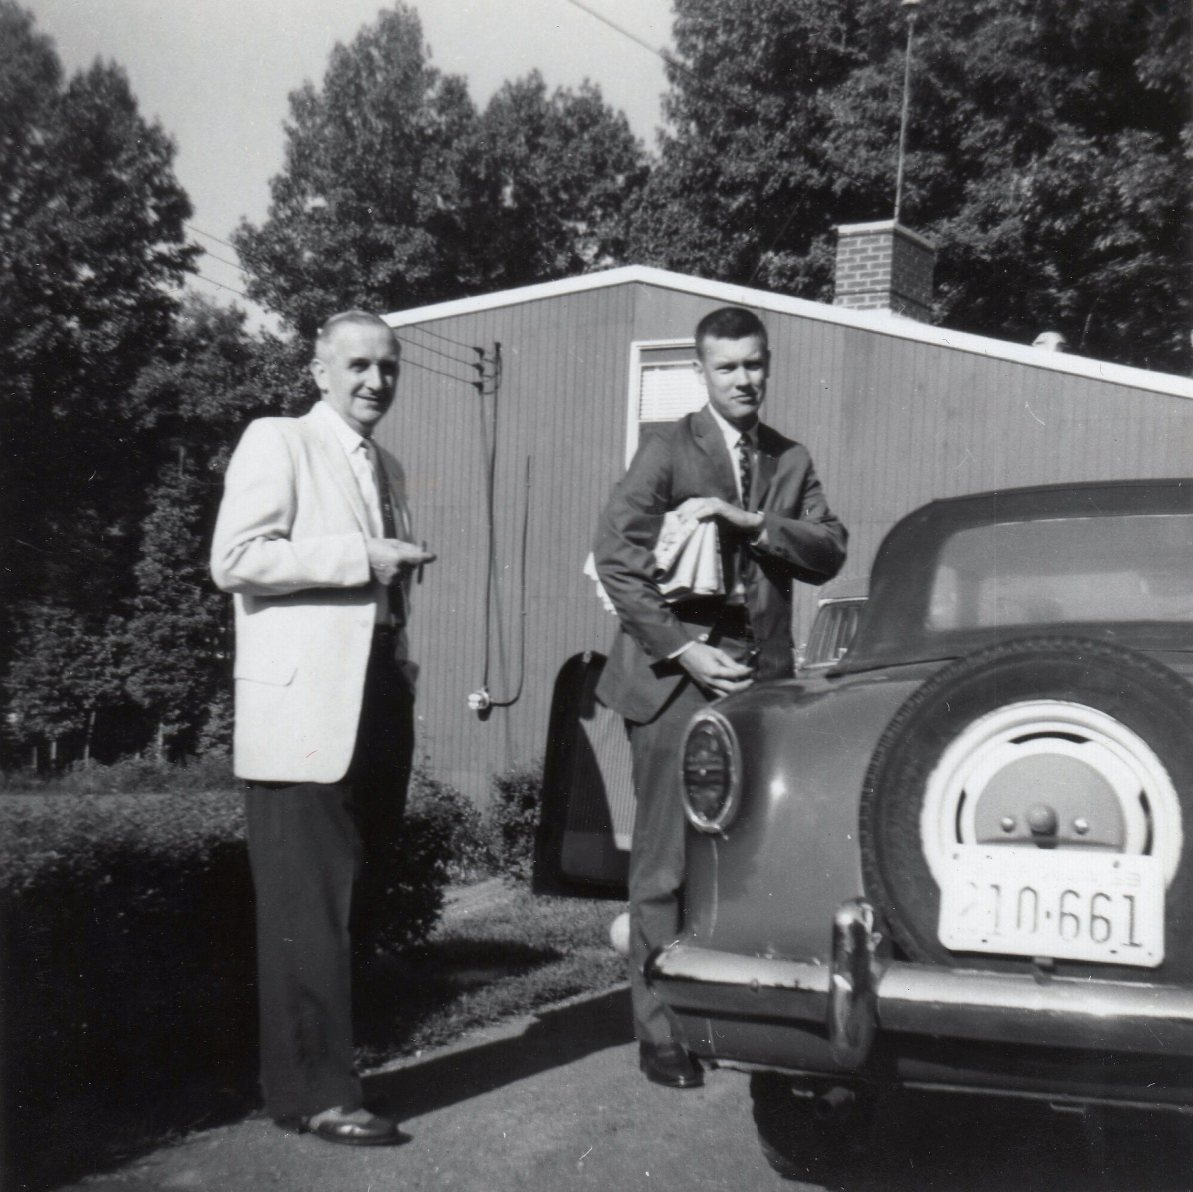 1959 09 IFB JFB in suits in driveway with Nash 001